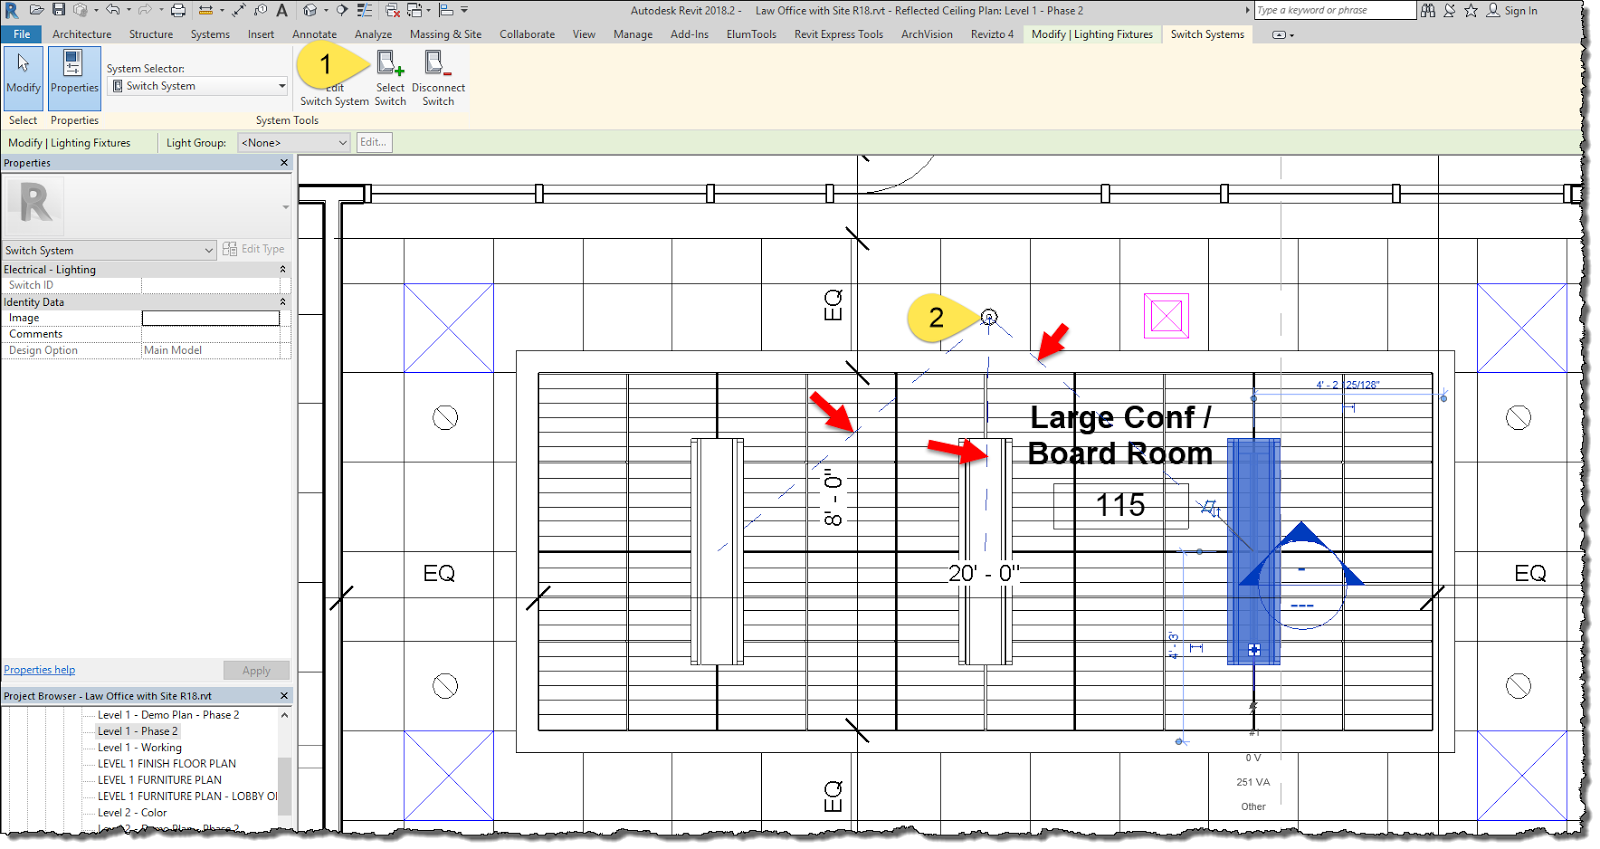 bim chapters revit lighting fixtures; switchinga tag can be placed, using the switchid parameter to document which switch controls which lights the big limitation here is we can only assign one switch